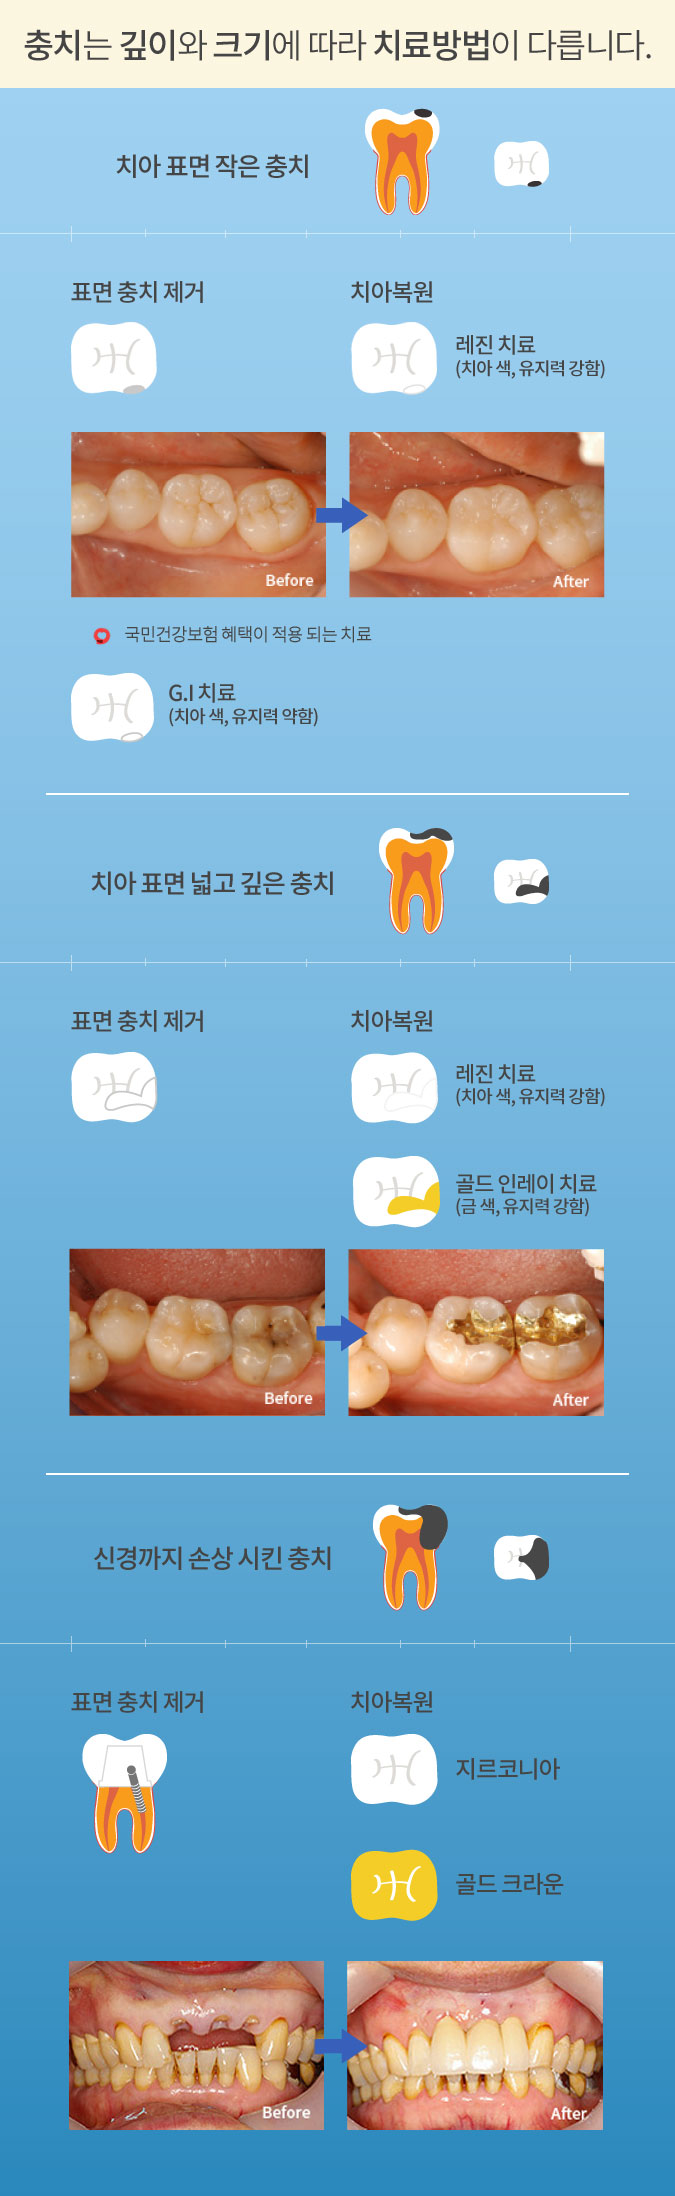 mplant_dental_imgl_03_2_m